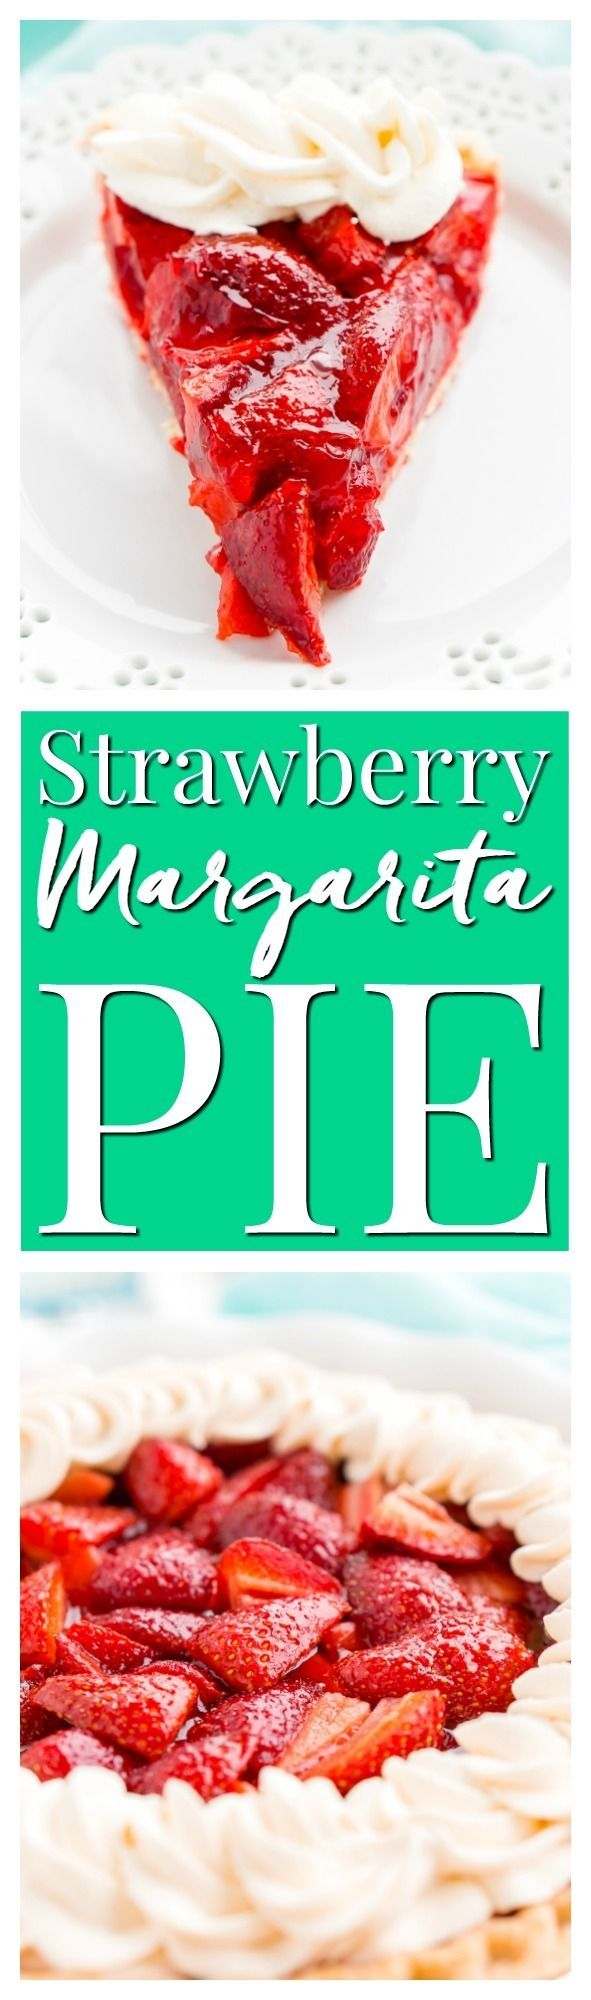 This Fresh Strawberry Margarita Pie is made with fresh, ripe strawberries, smooth Altos Tequila, and a few other simple ingredients for a boozy summertime dessert! via @sugarandsoulco